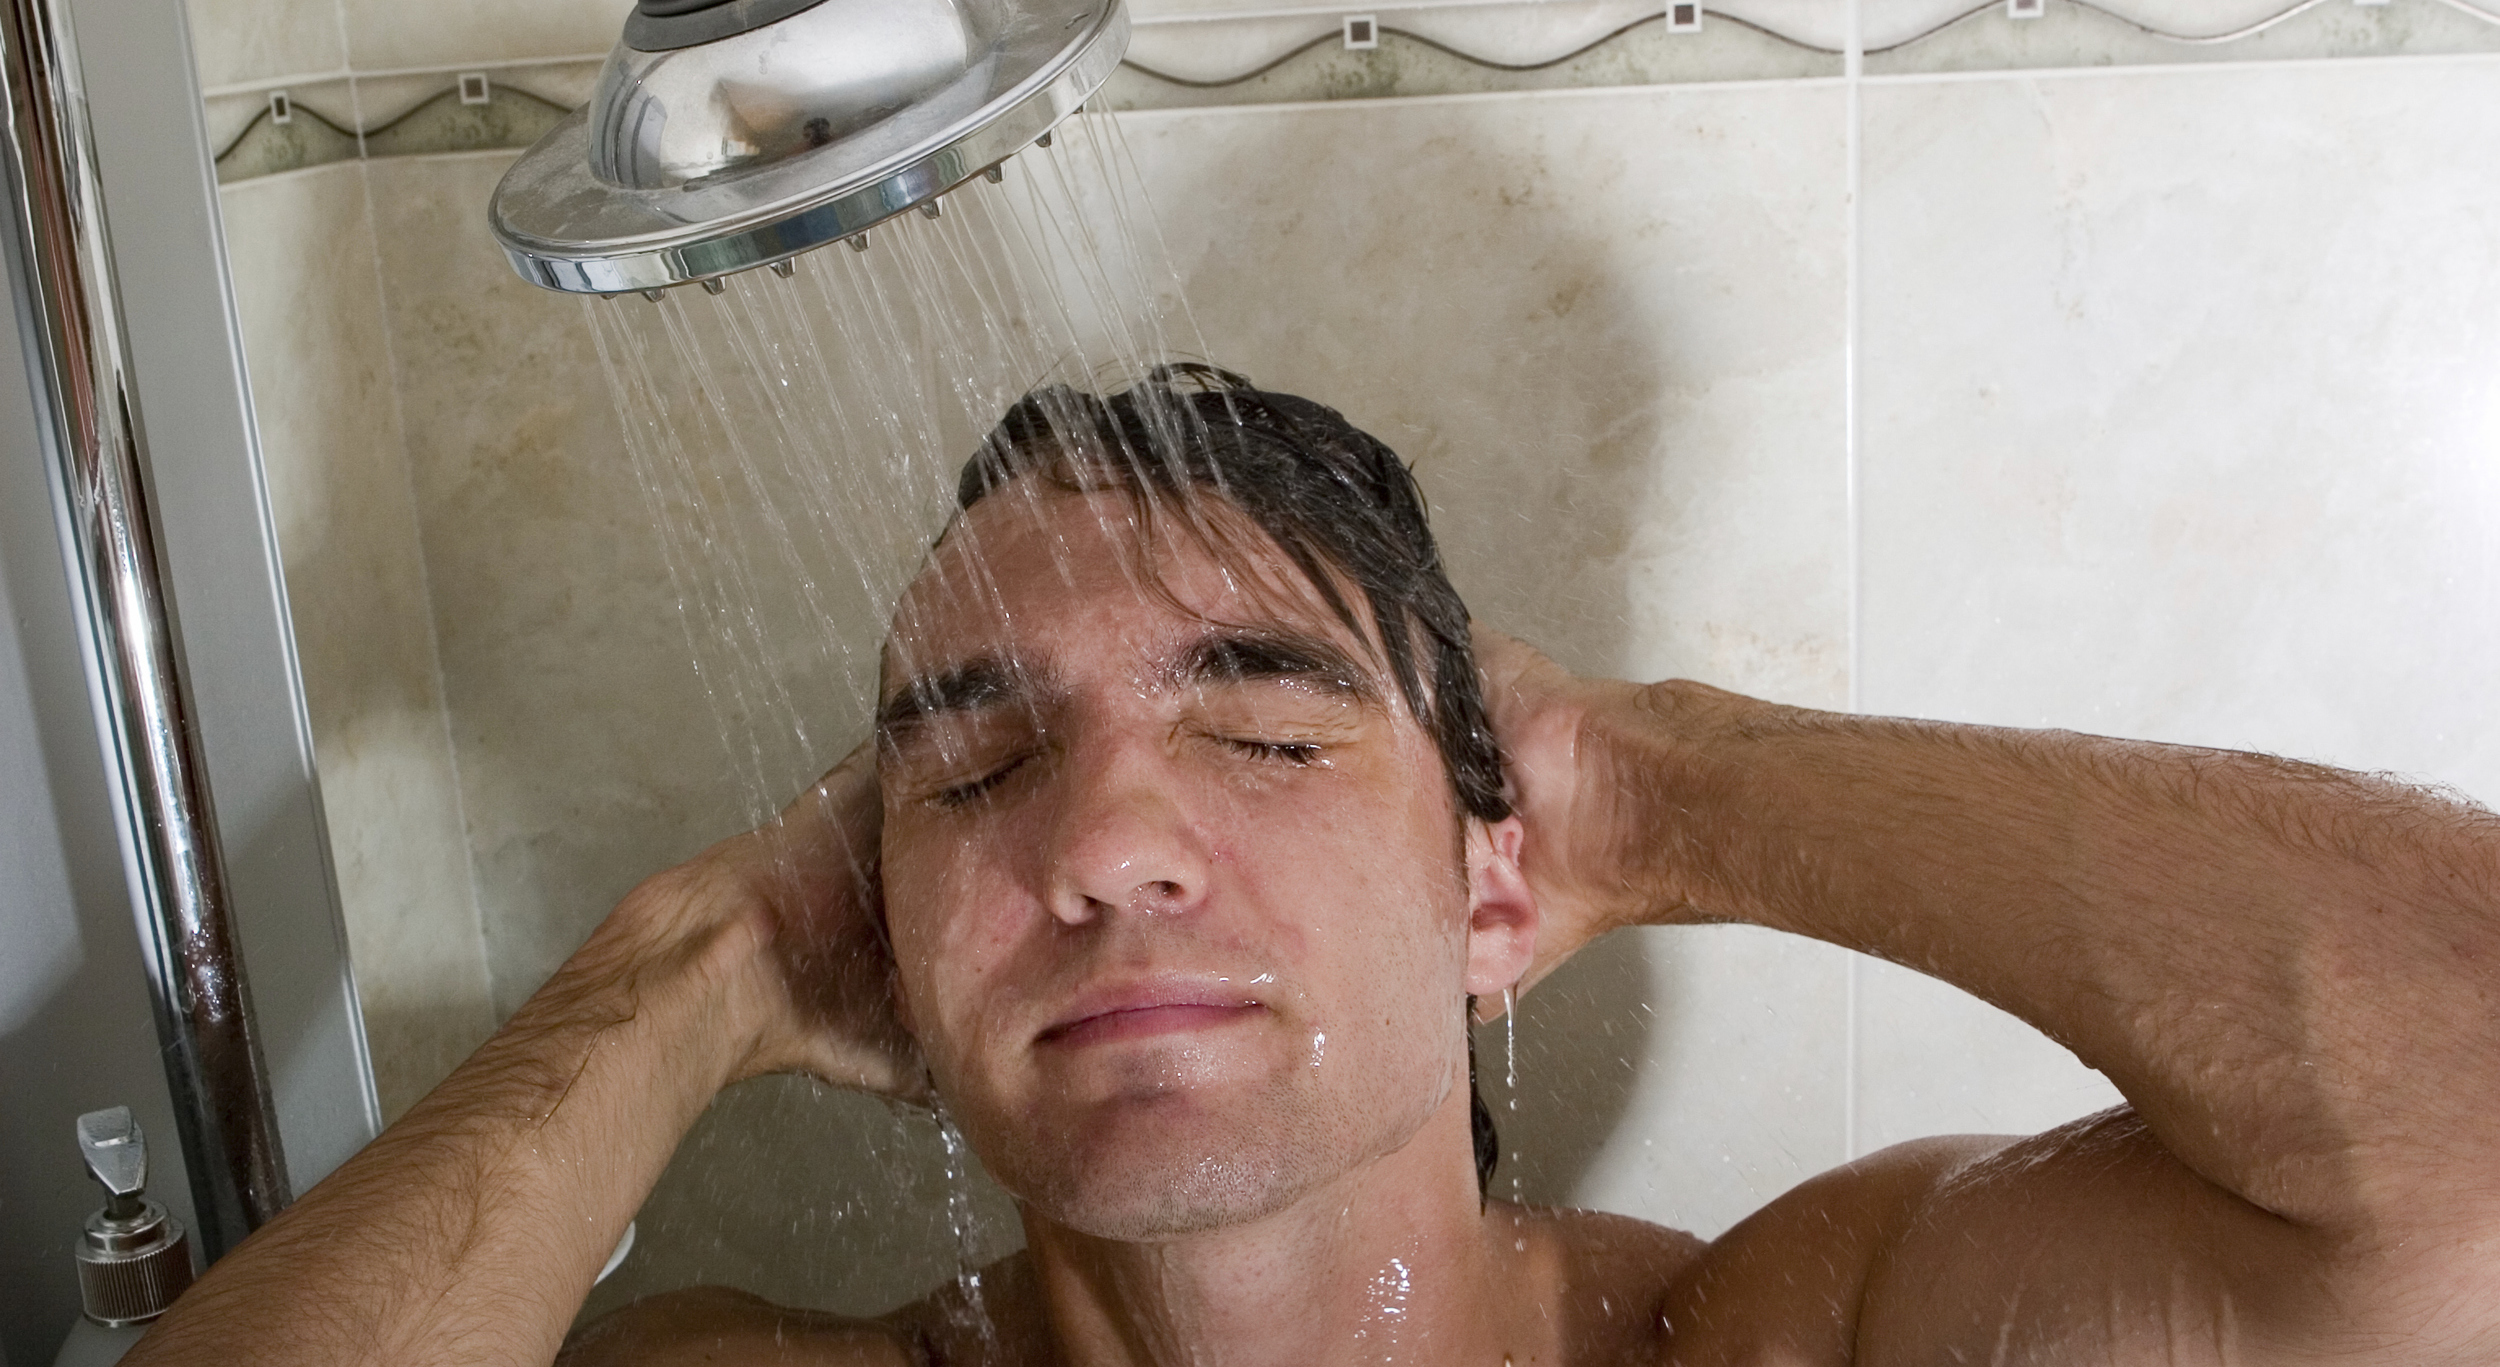 a-young-man-taking-shower-also-available-2